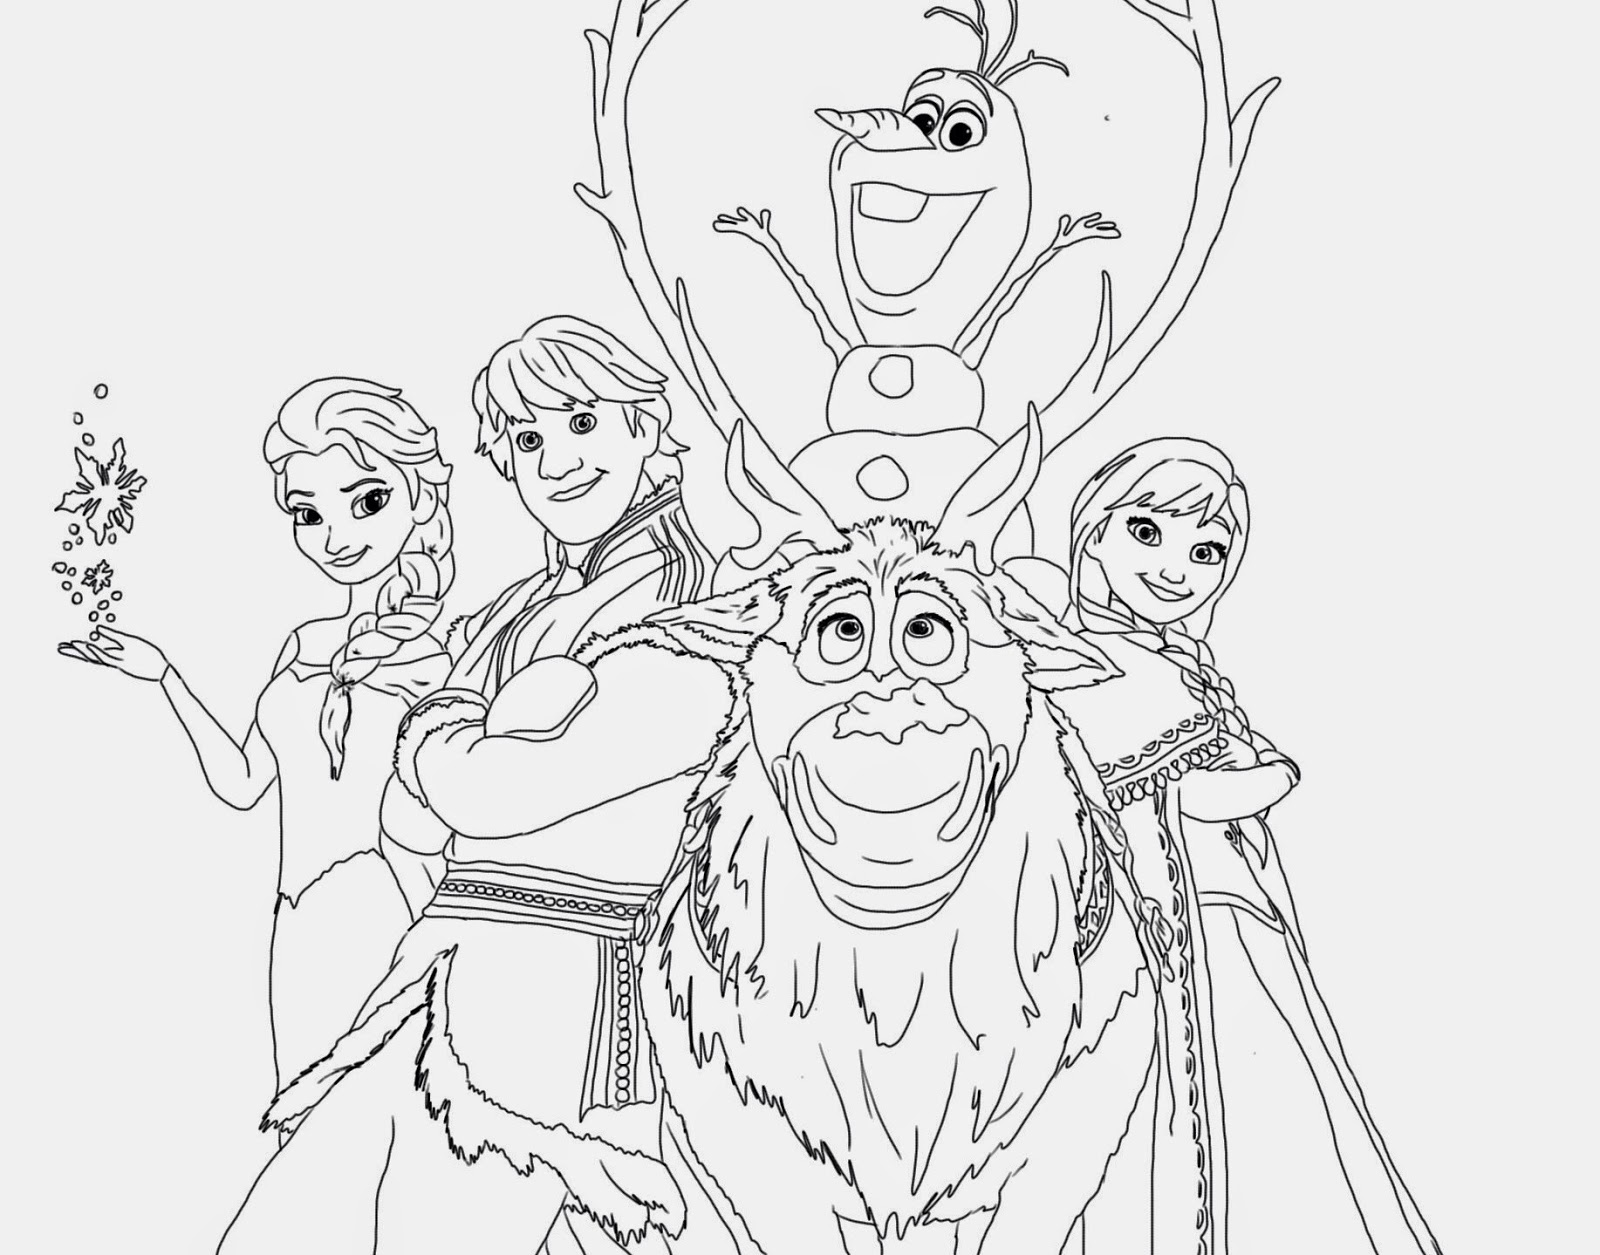 coloring pages for kids to print out - Free Online Colouring Pages For Kids